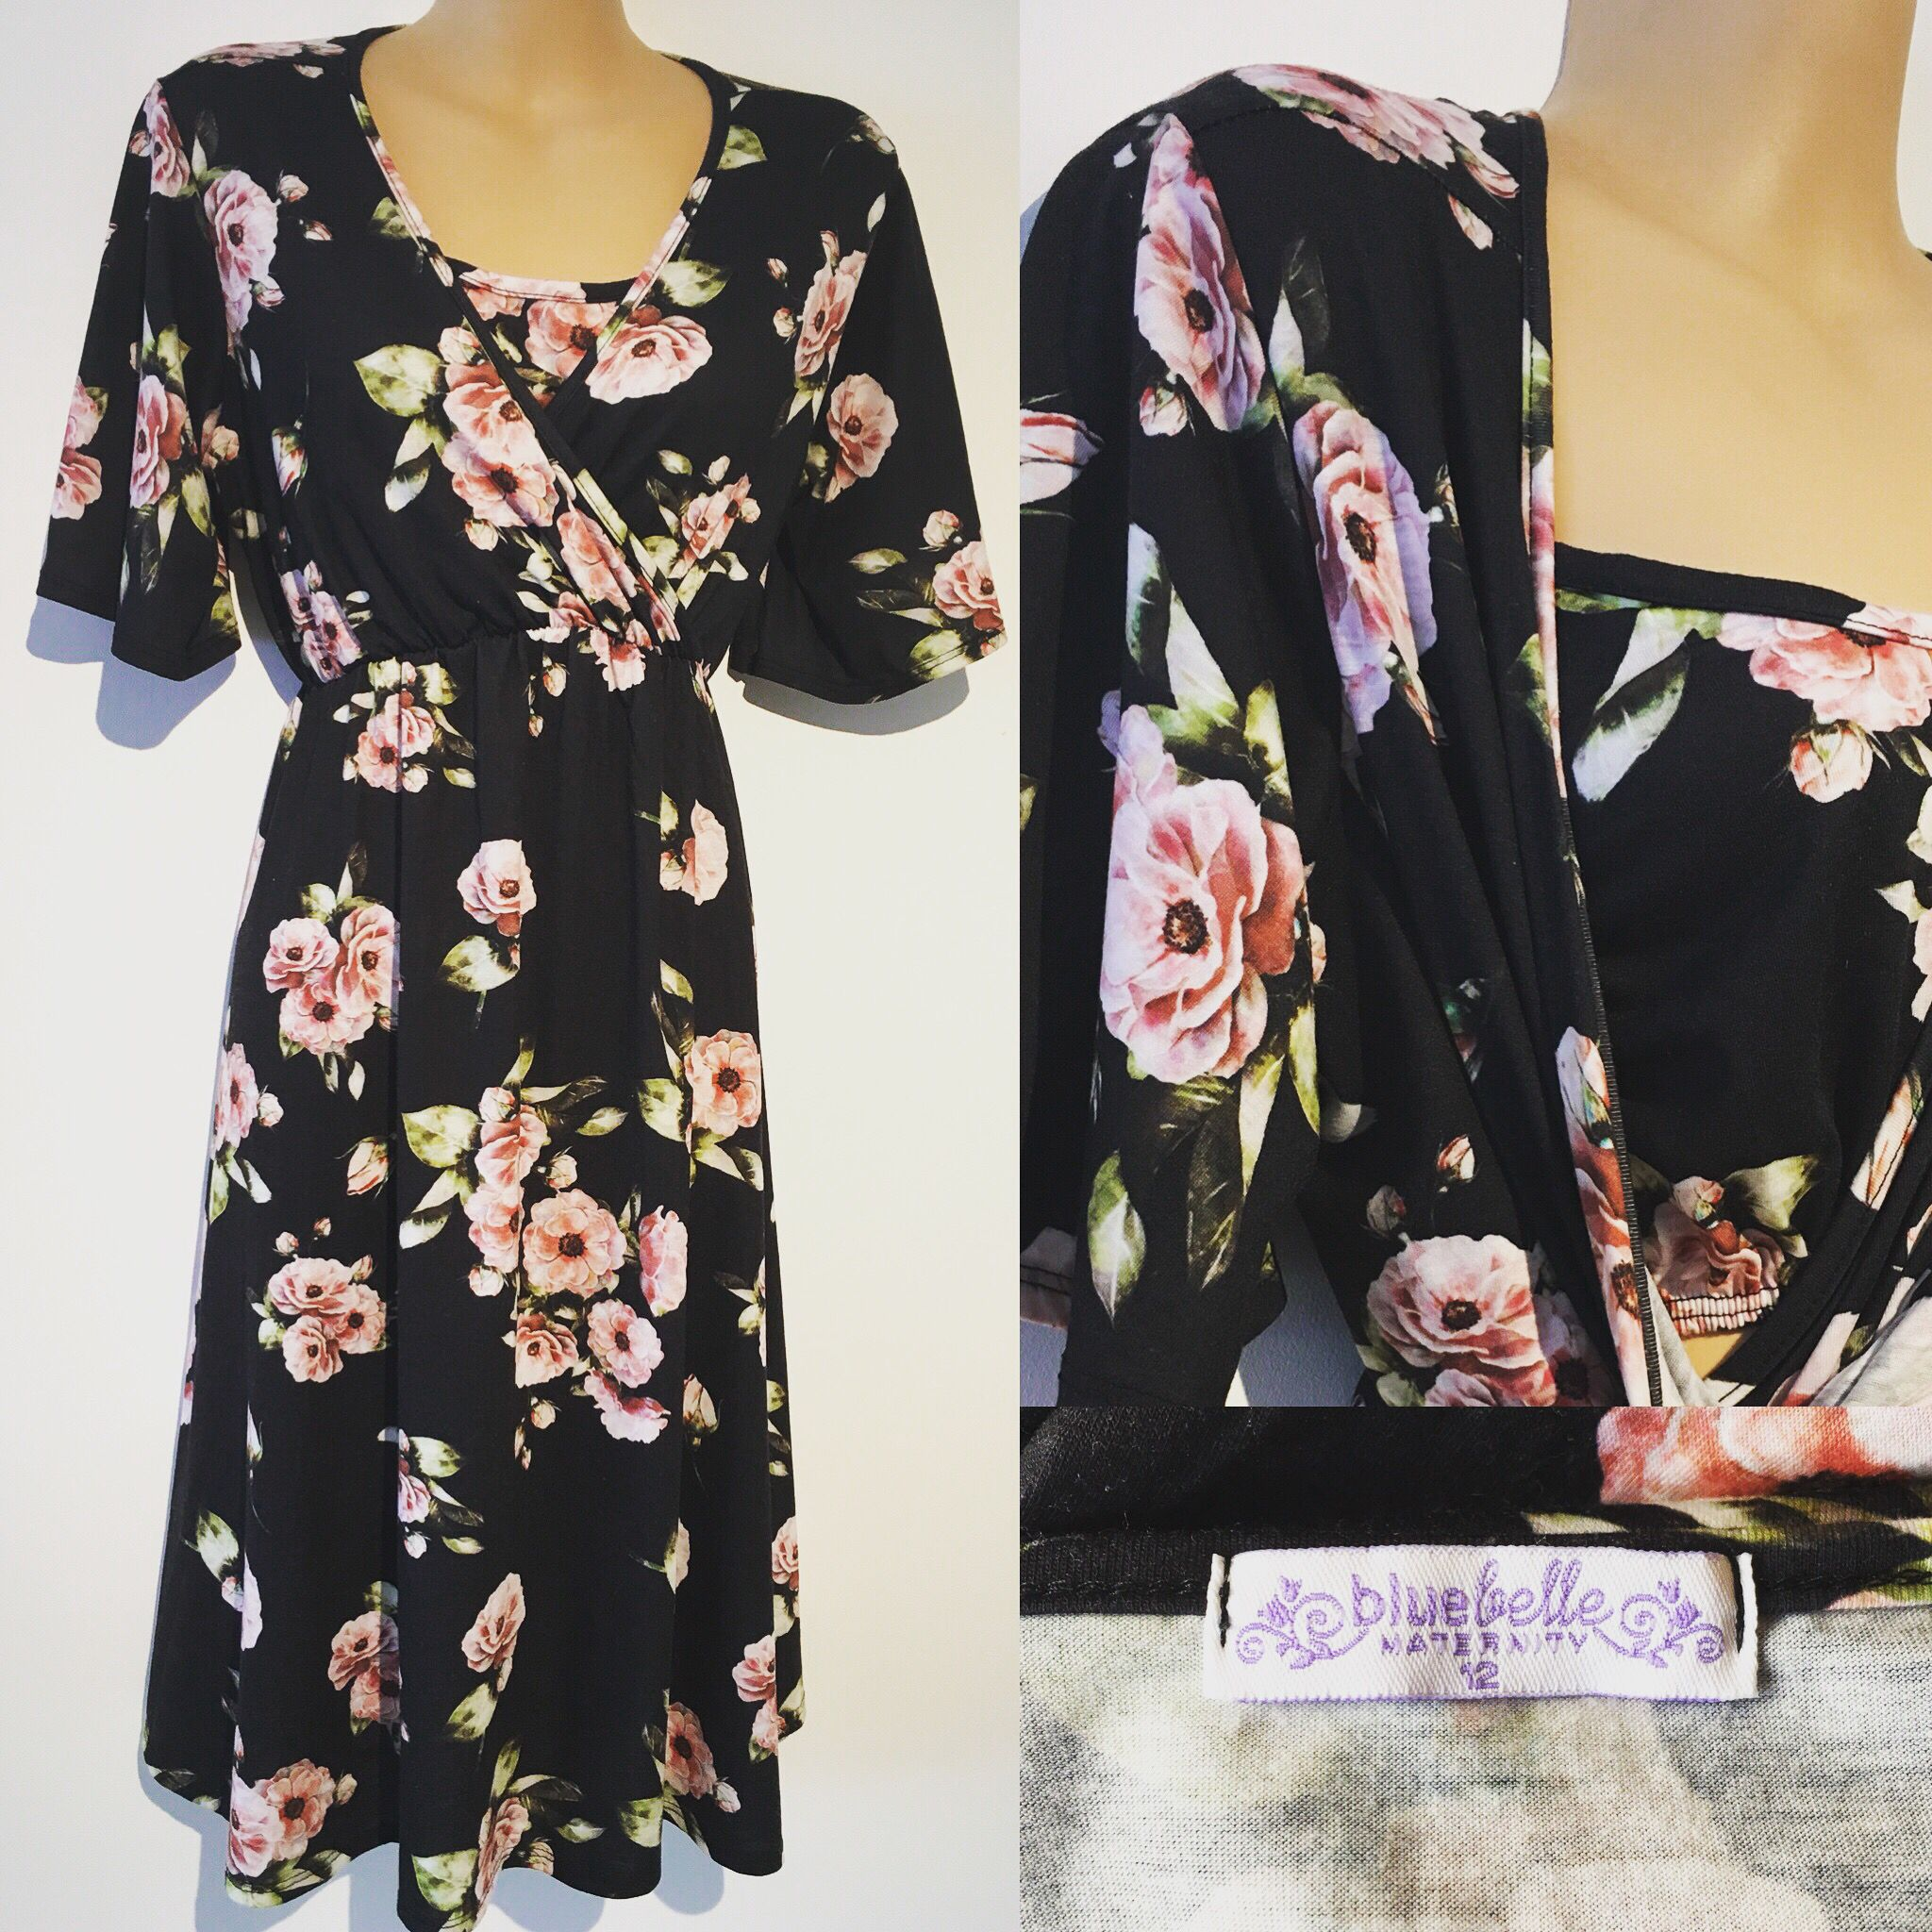 Black floral dress suitable for casual or occasion wear